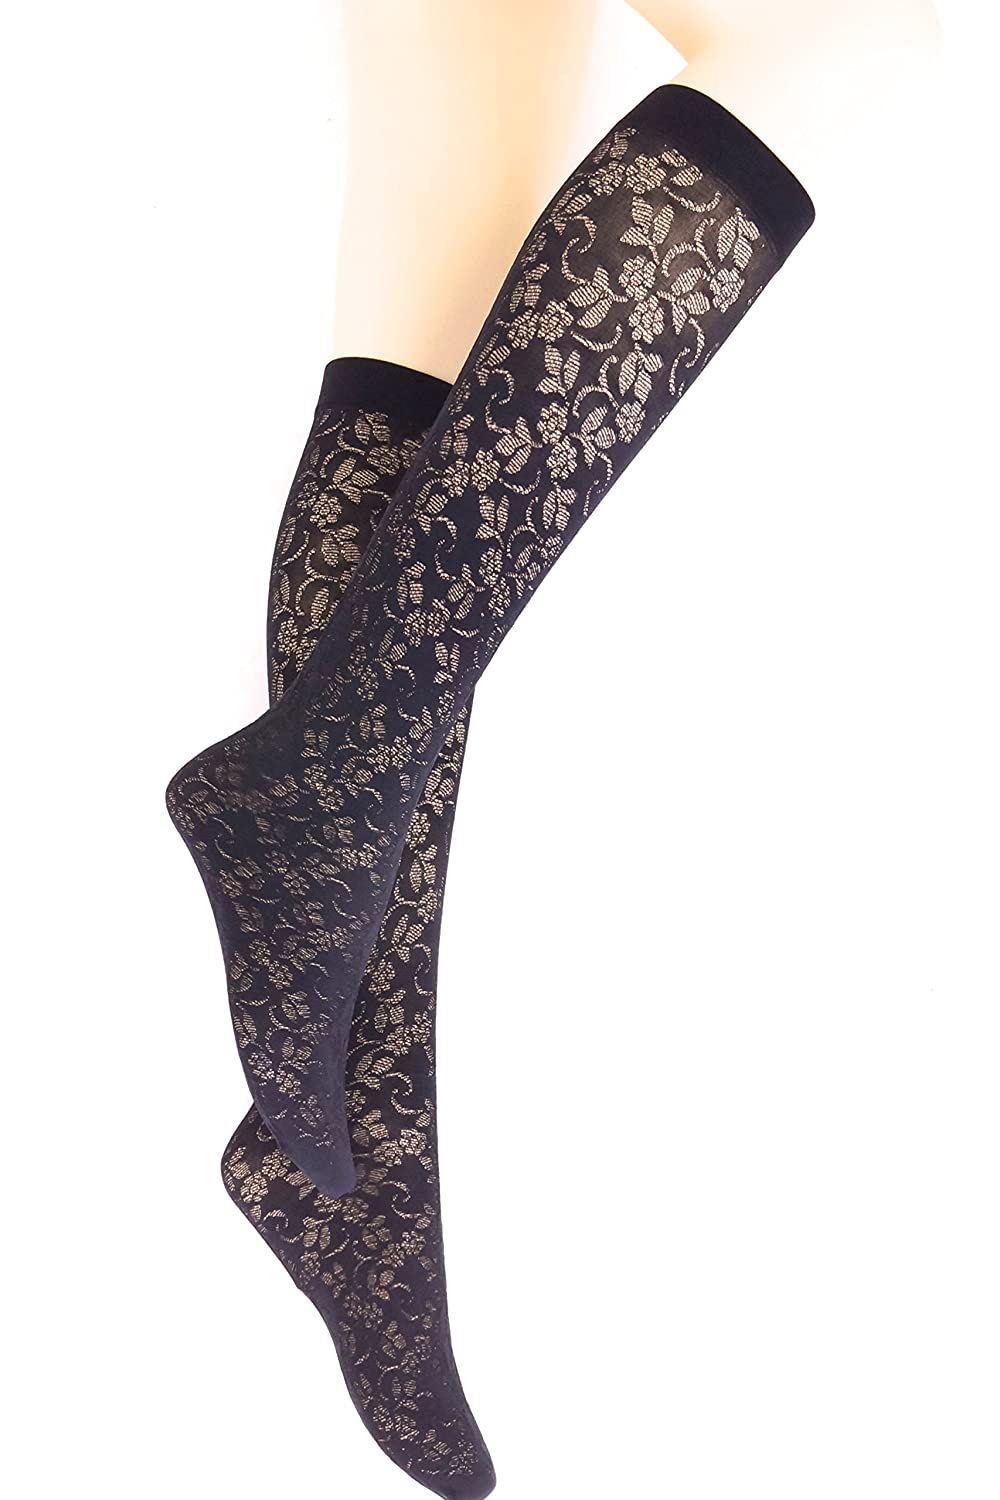 2 Pairs New womens black floral pattern semi opaque knee high pop socks 60 Denier P7